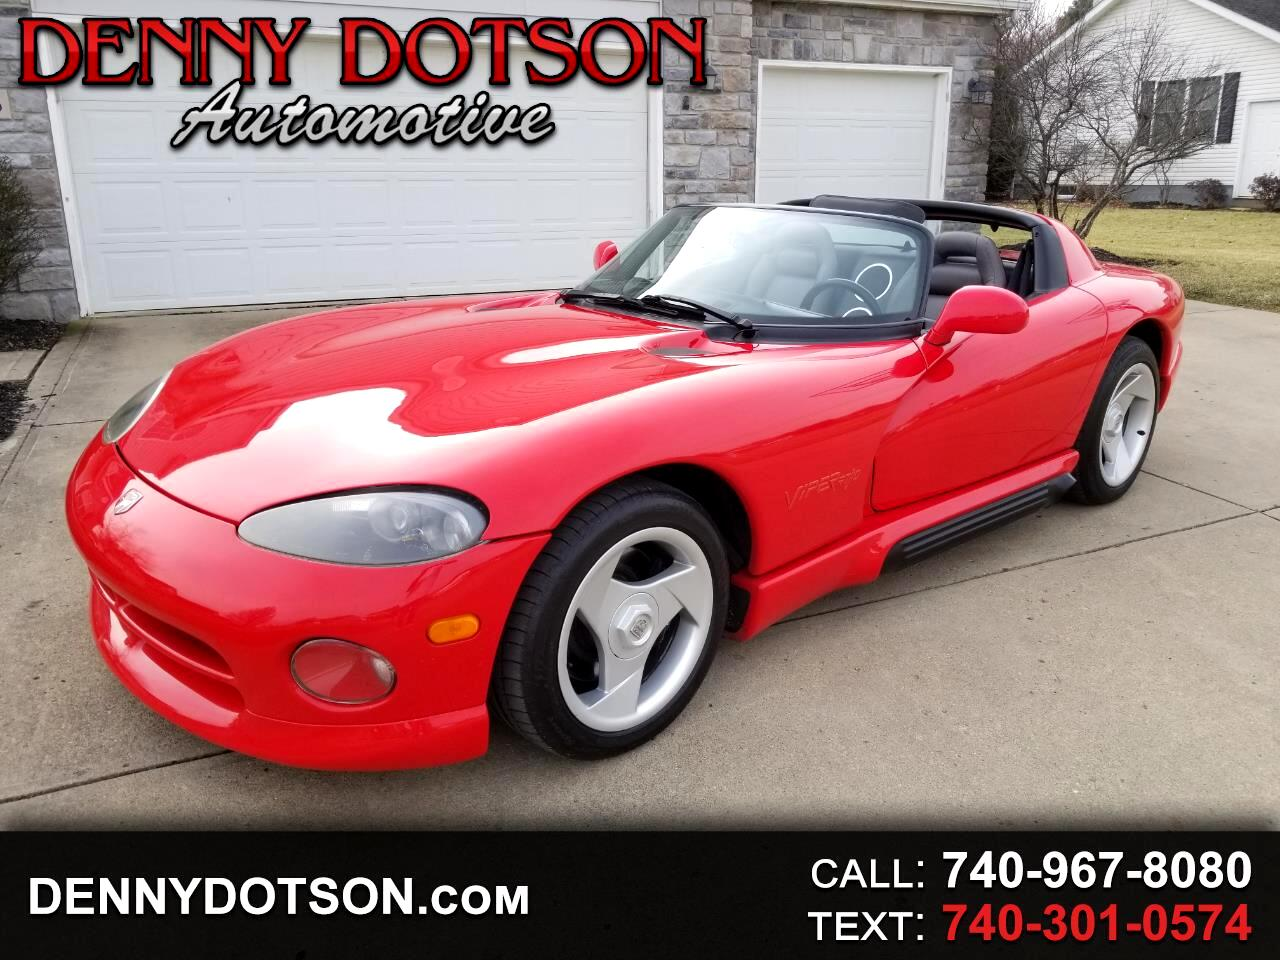 1995 Dodge Viper 2dr Open Sports Car